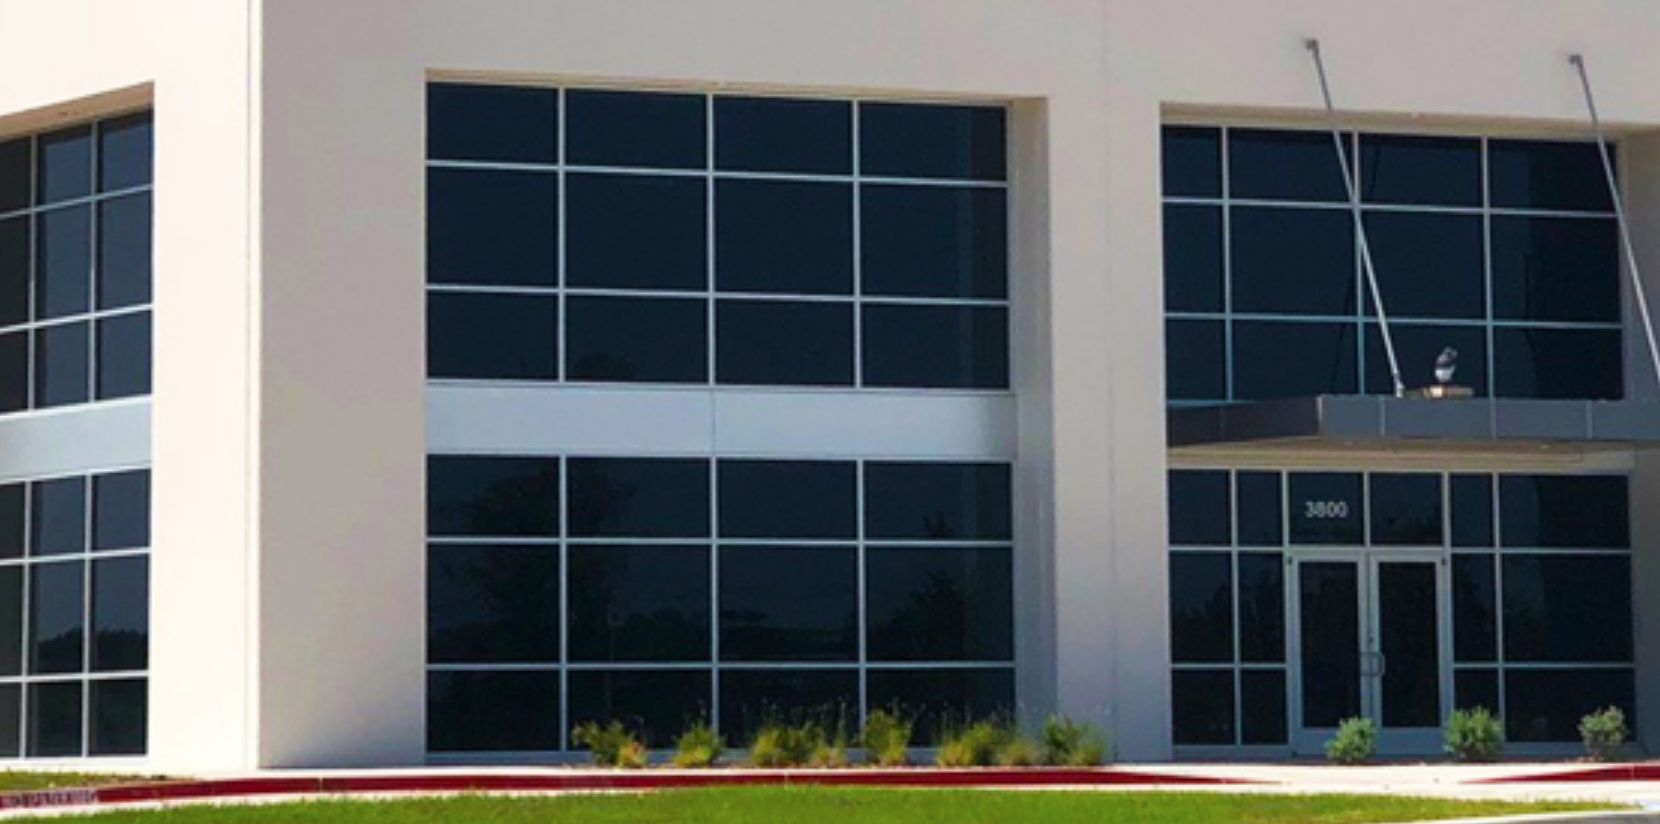 Trammell Crow built the Cedardale Distribution Center in southern Dallas in 2018.